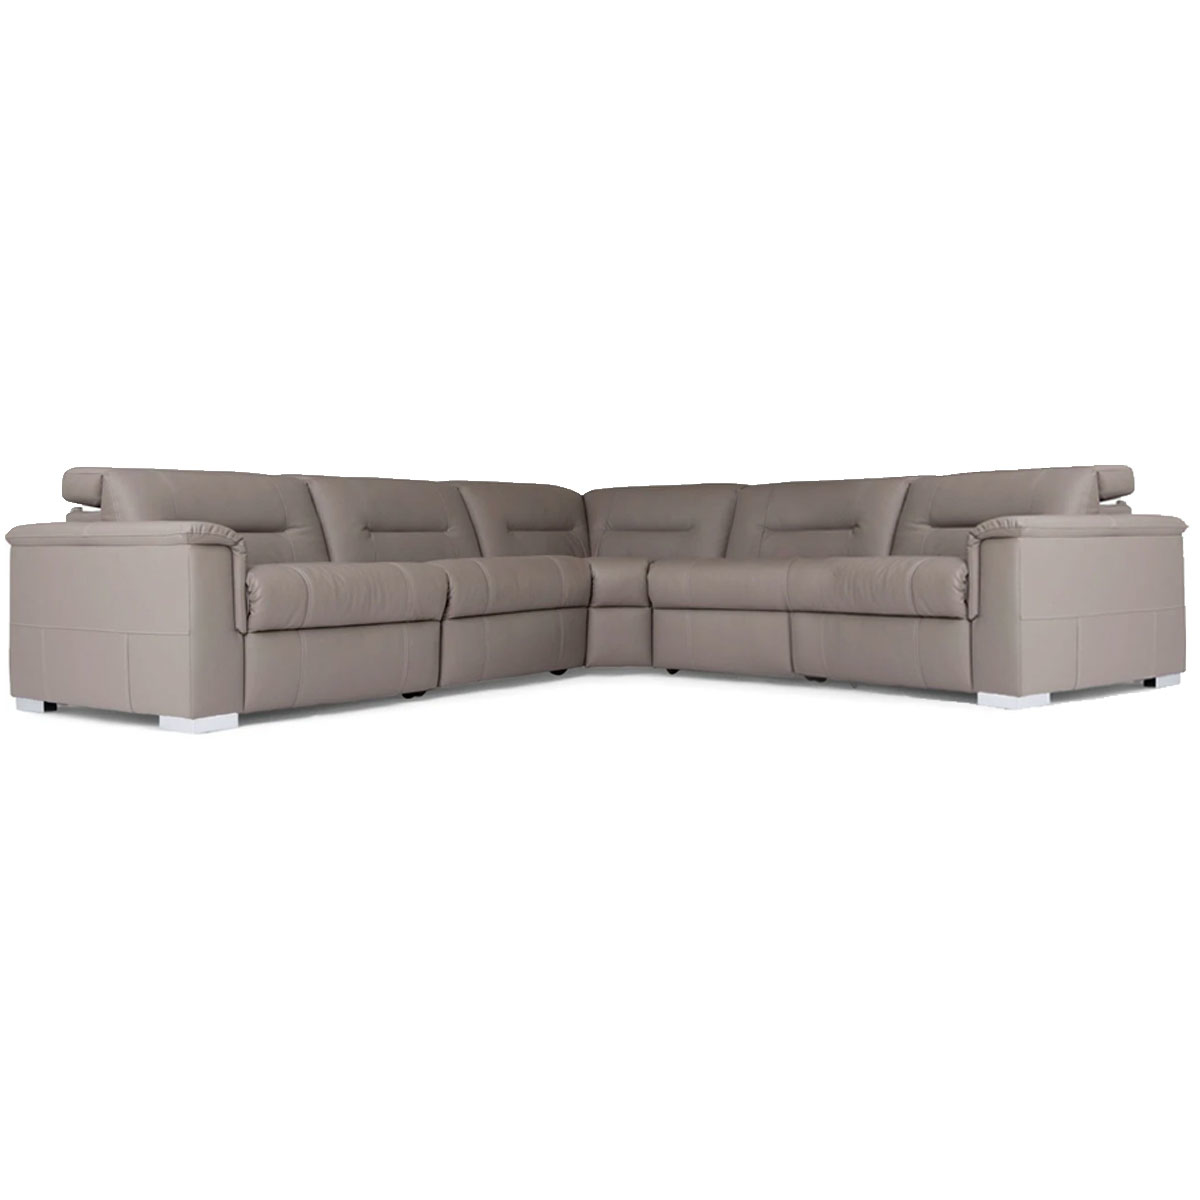 Picture of KEONI 5PC SECTIONAL